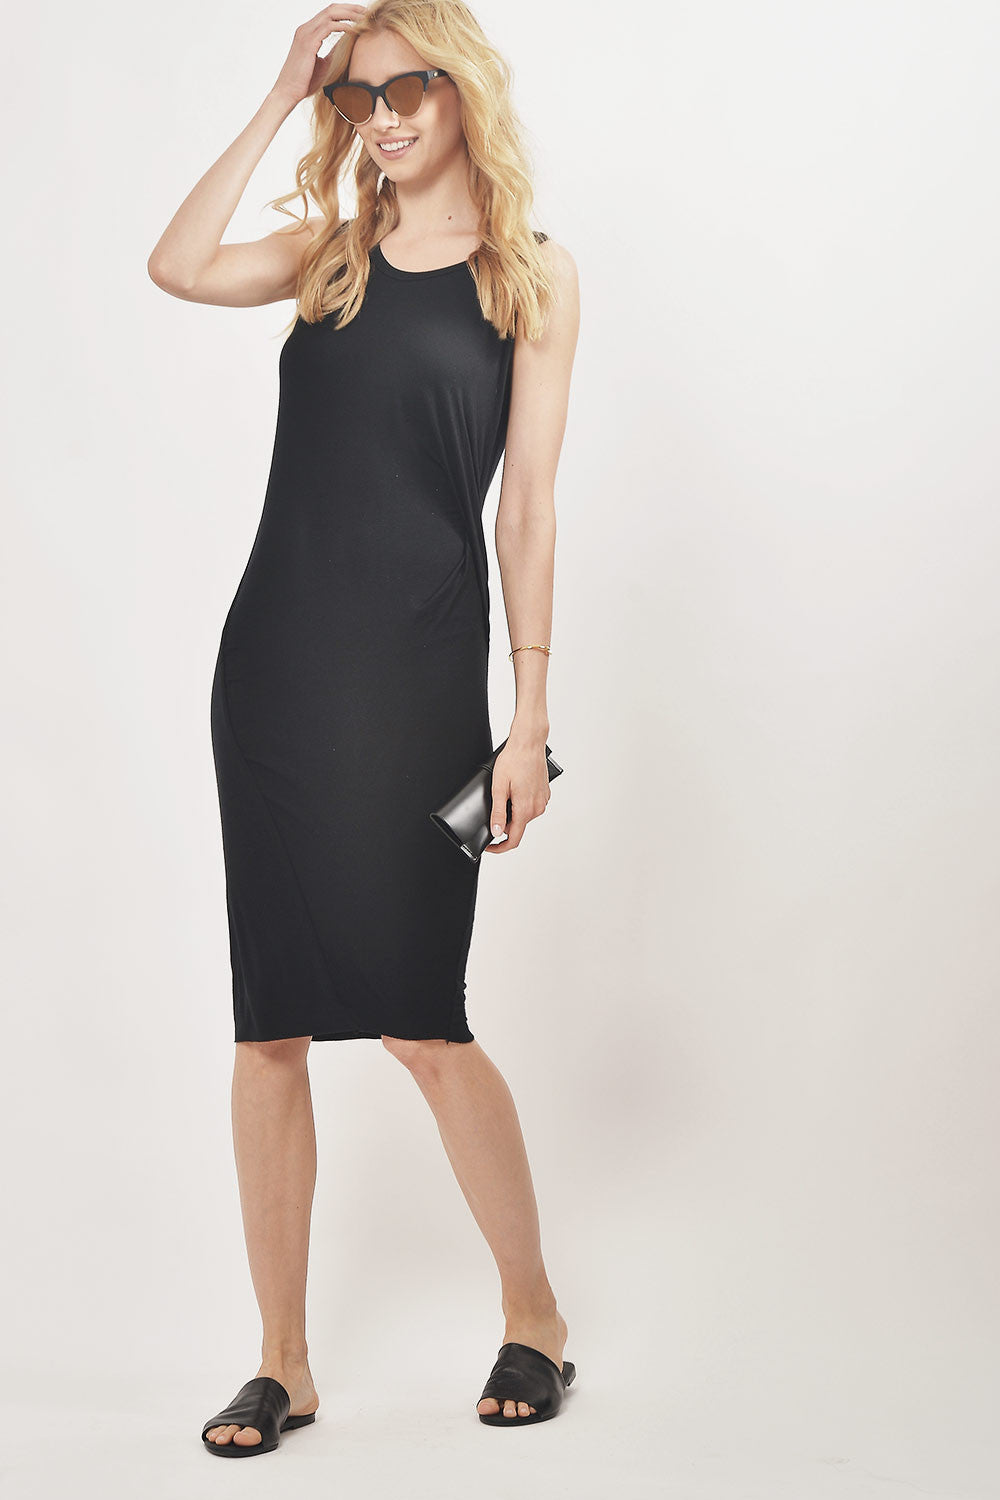 SEN Alaia Dress - Primary New York